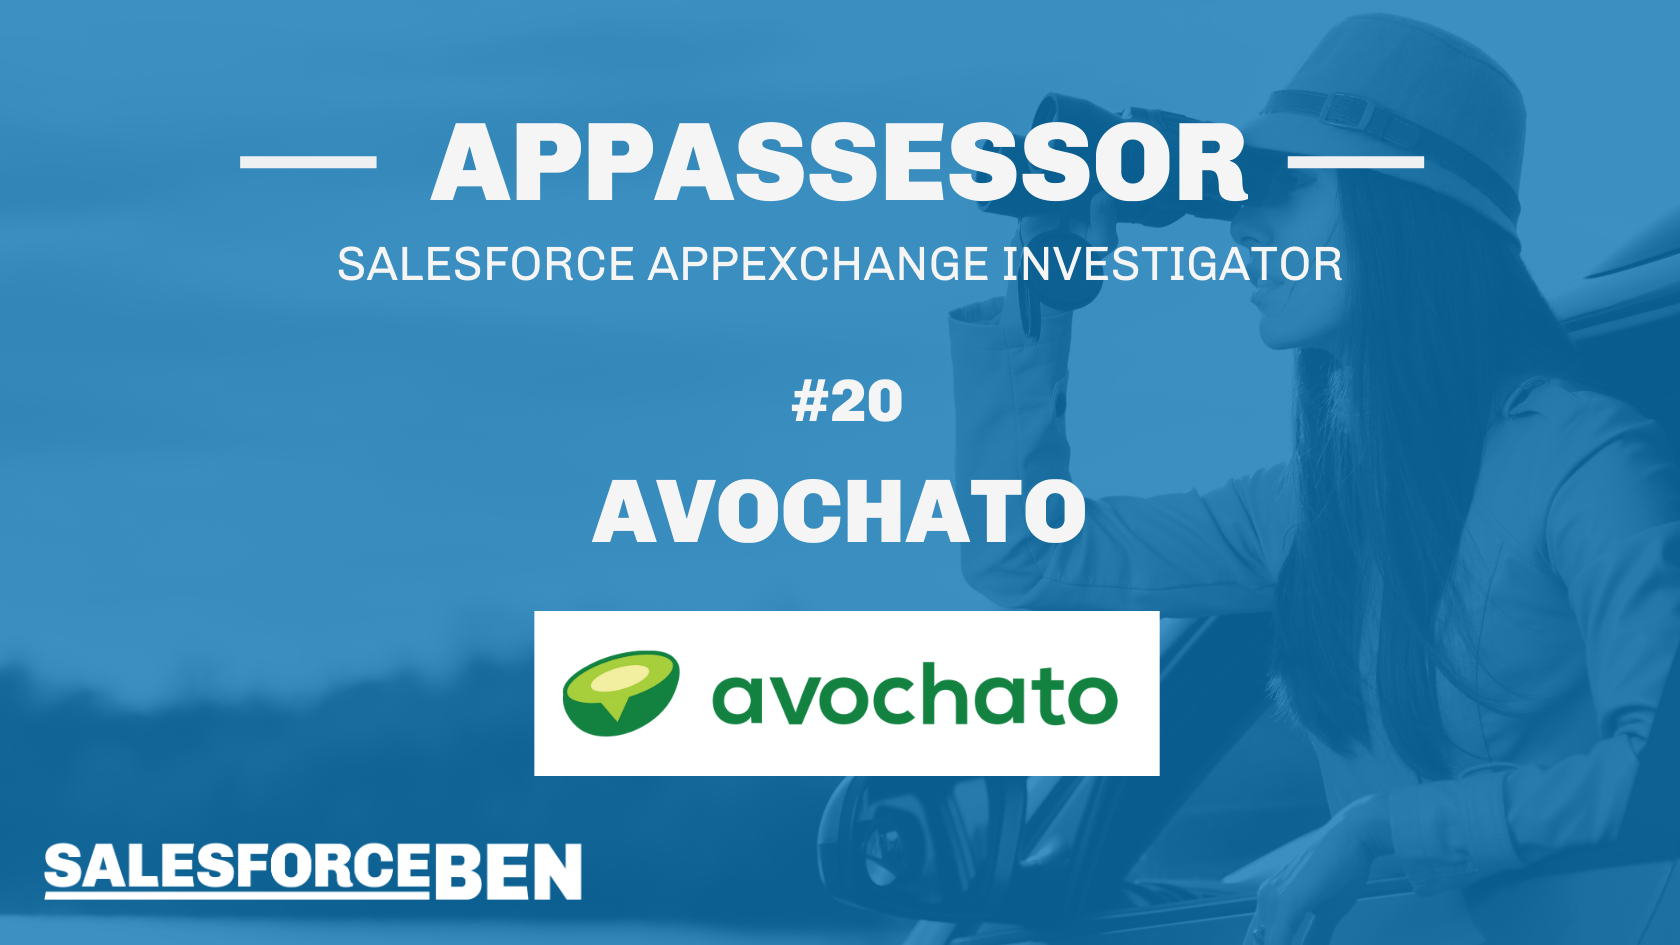 Avochato In-Depth Review [The AppAssessor #20]